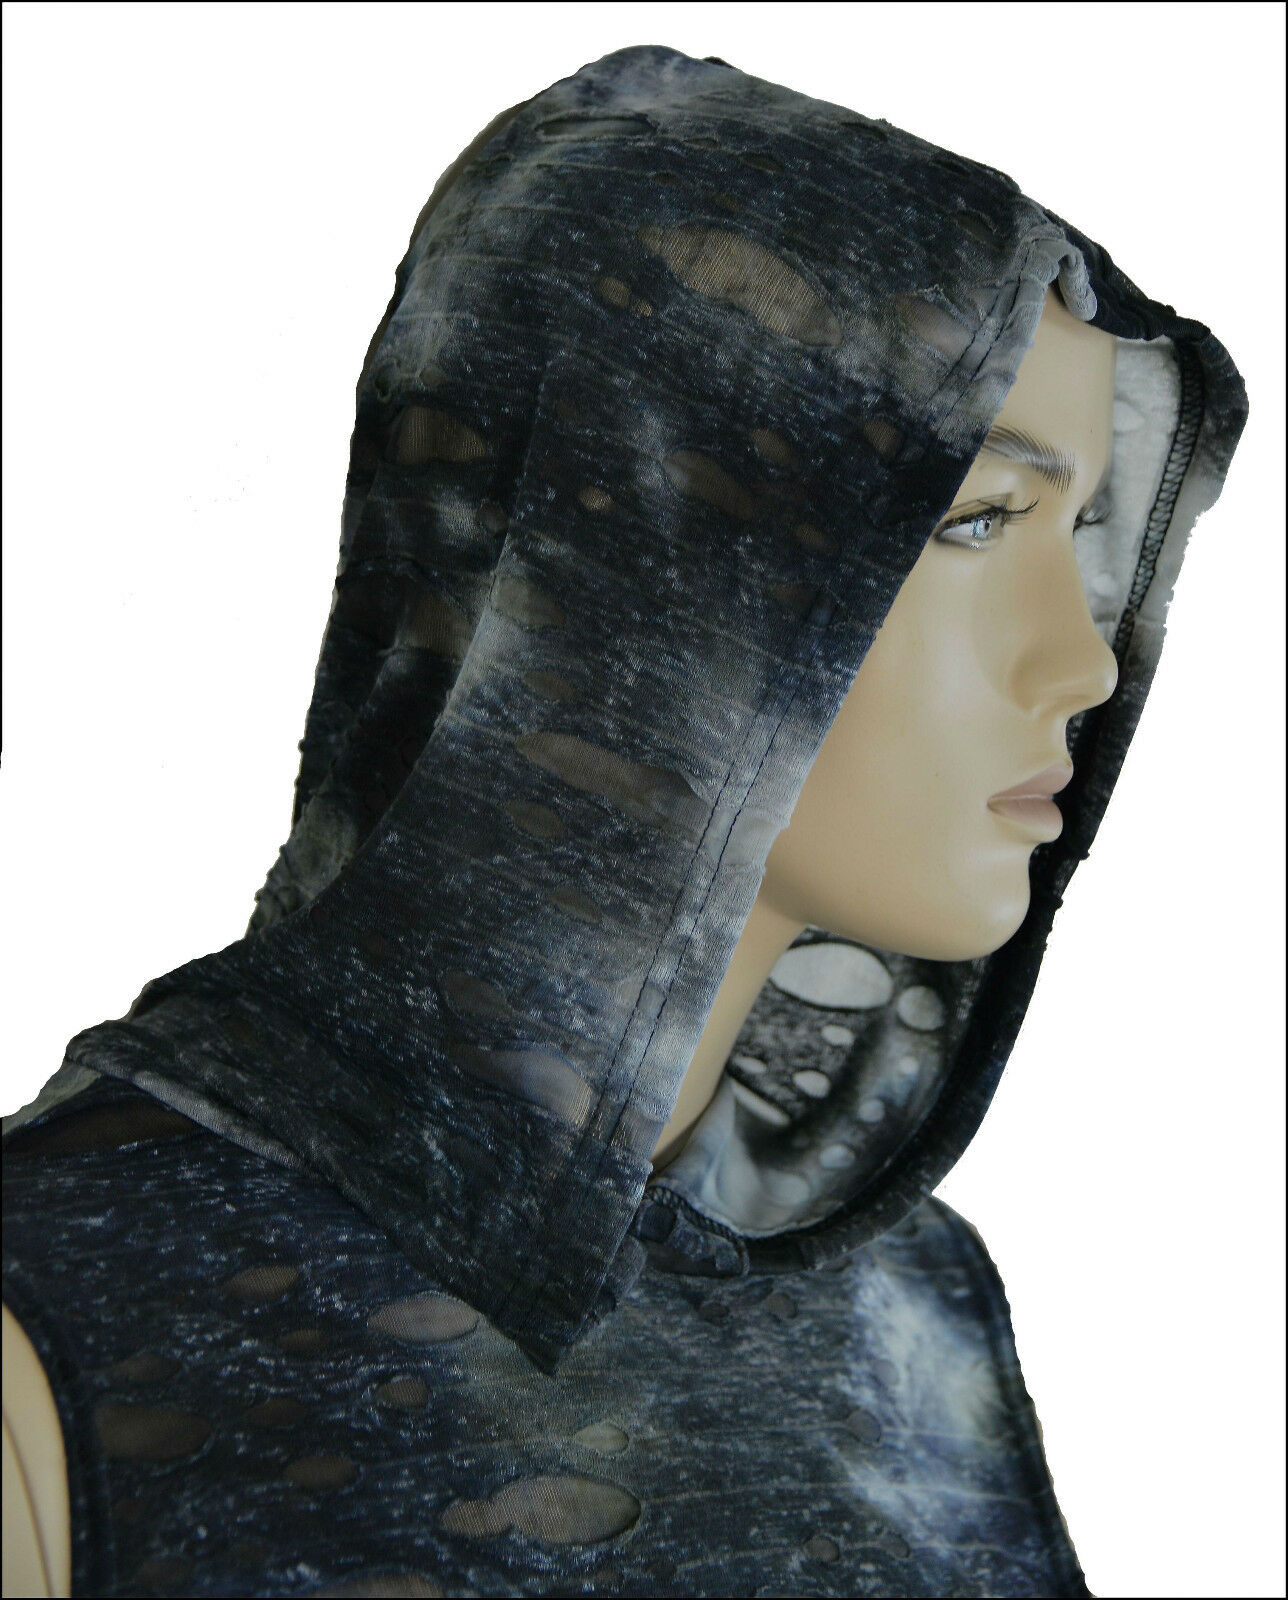 SHRINE CYBER GOTHIC RAVE RAVE BURNING MAN TECHNO ZOMBIE DECAYED SHIRT HOODIE Activewear